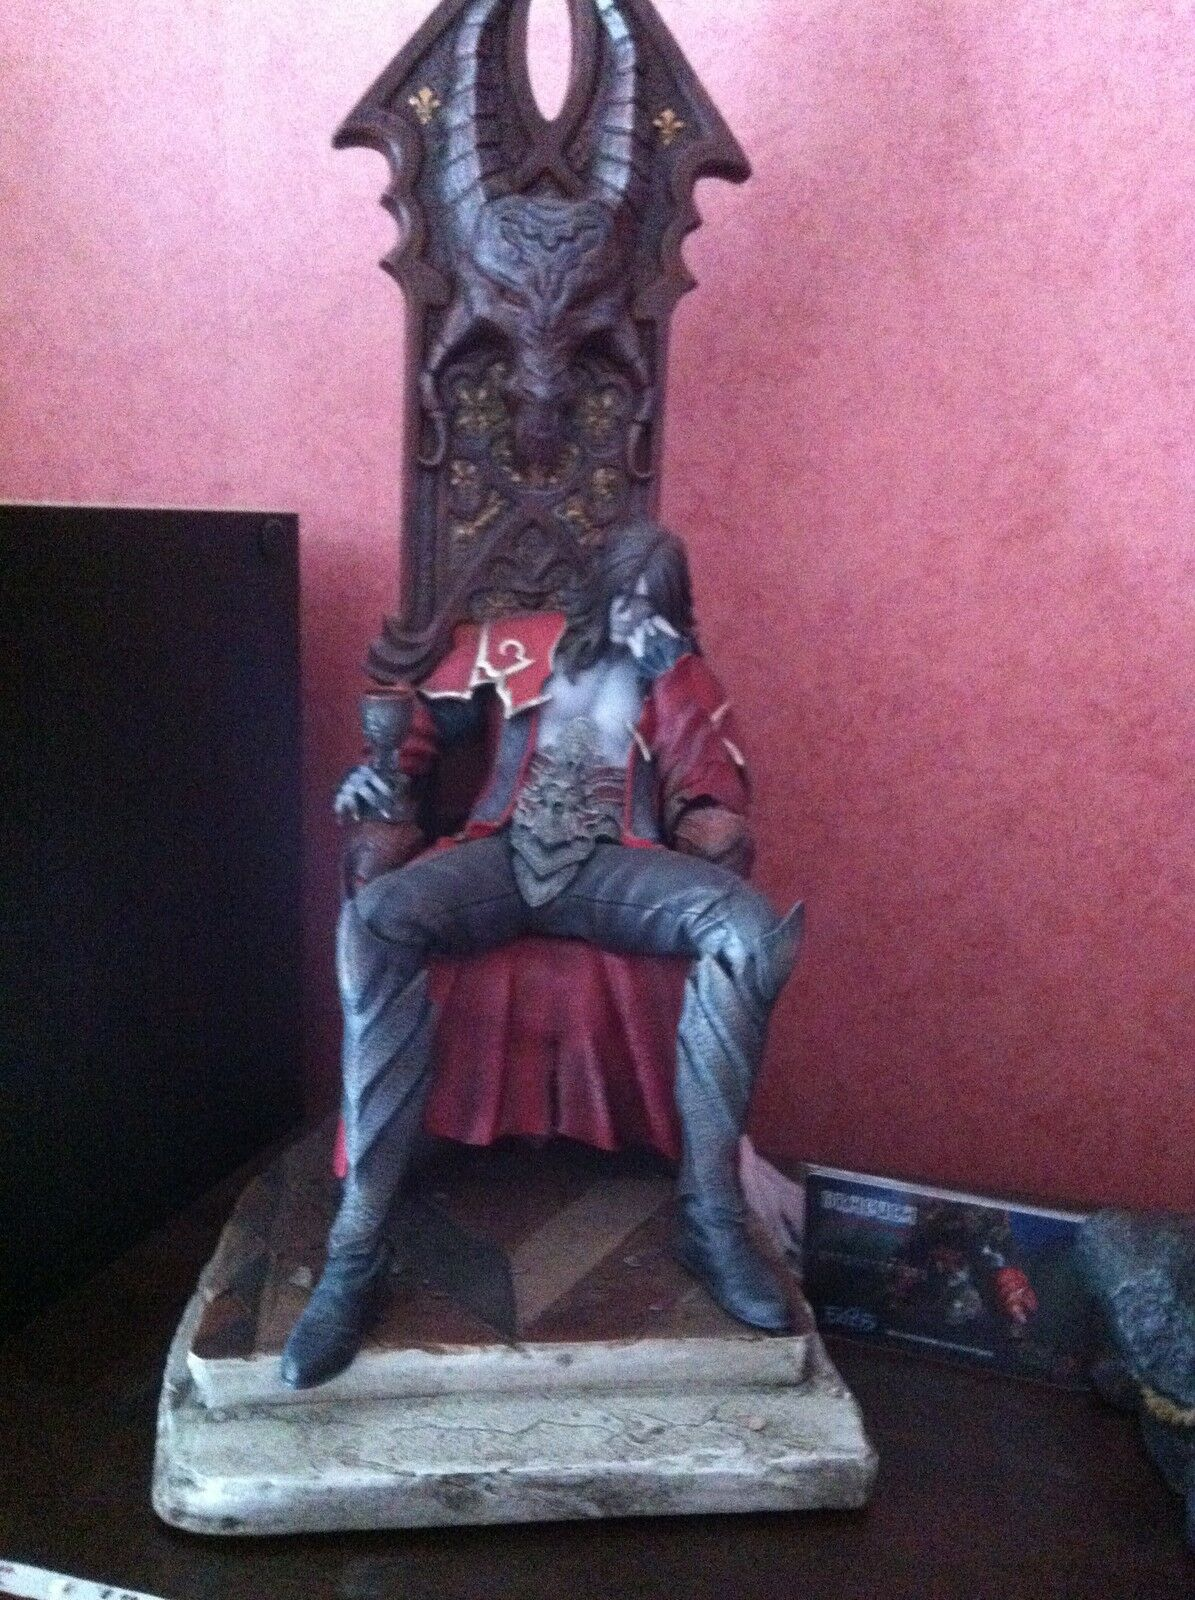 Figurine  Castlevania Dracula Statue 45 cm cm cm First 4 Figures exclusive edition d6fbf7